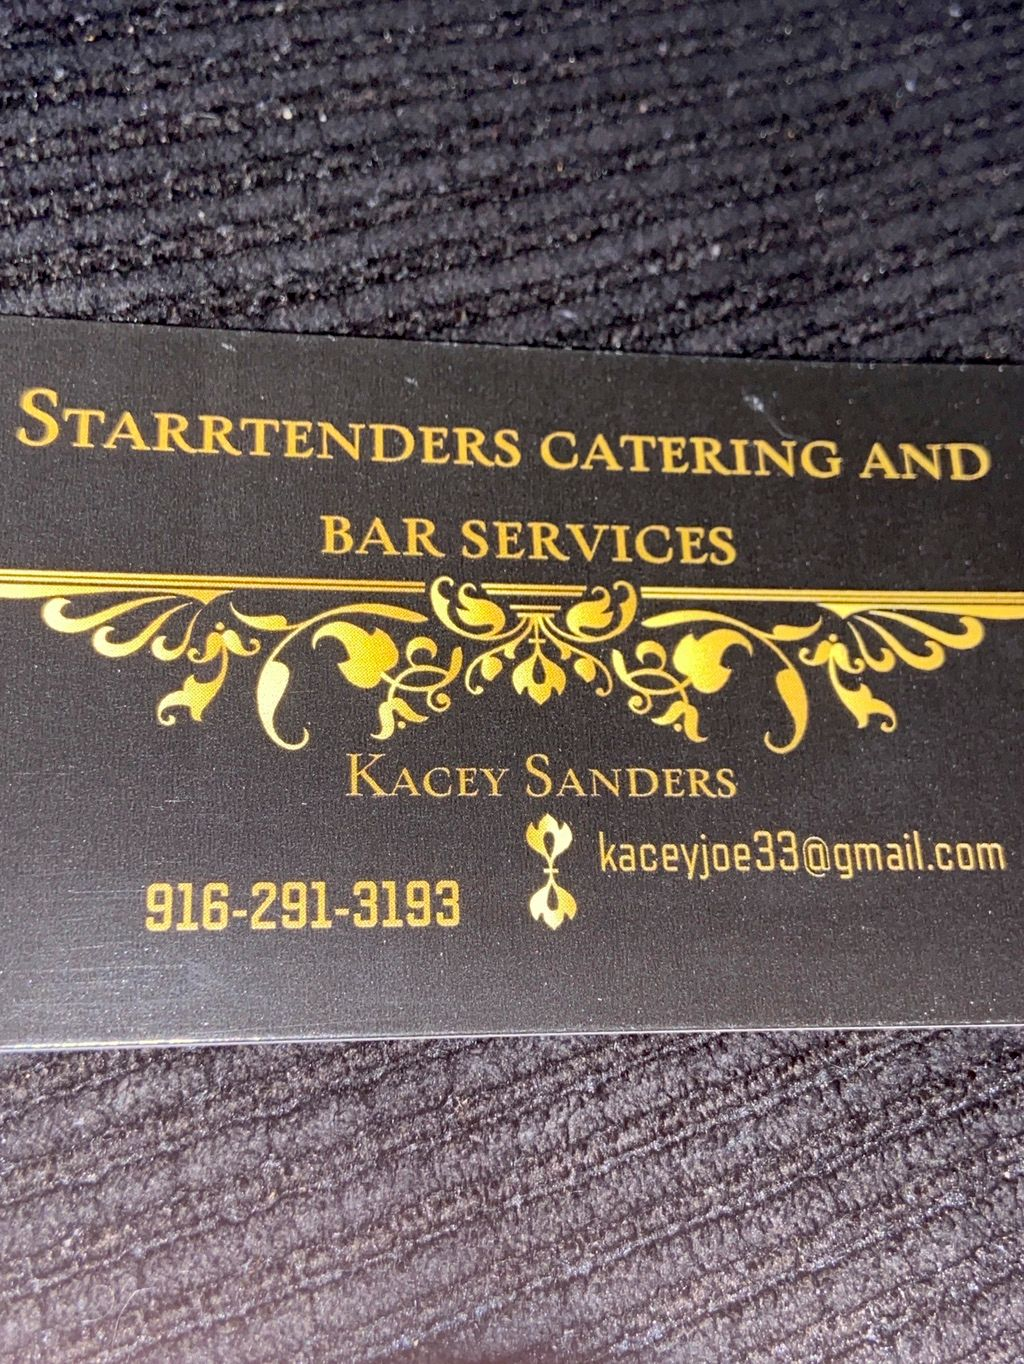 Starrtenders catering and bar service